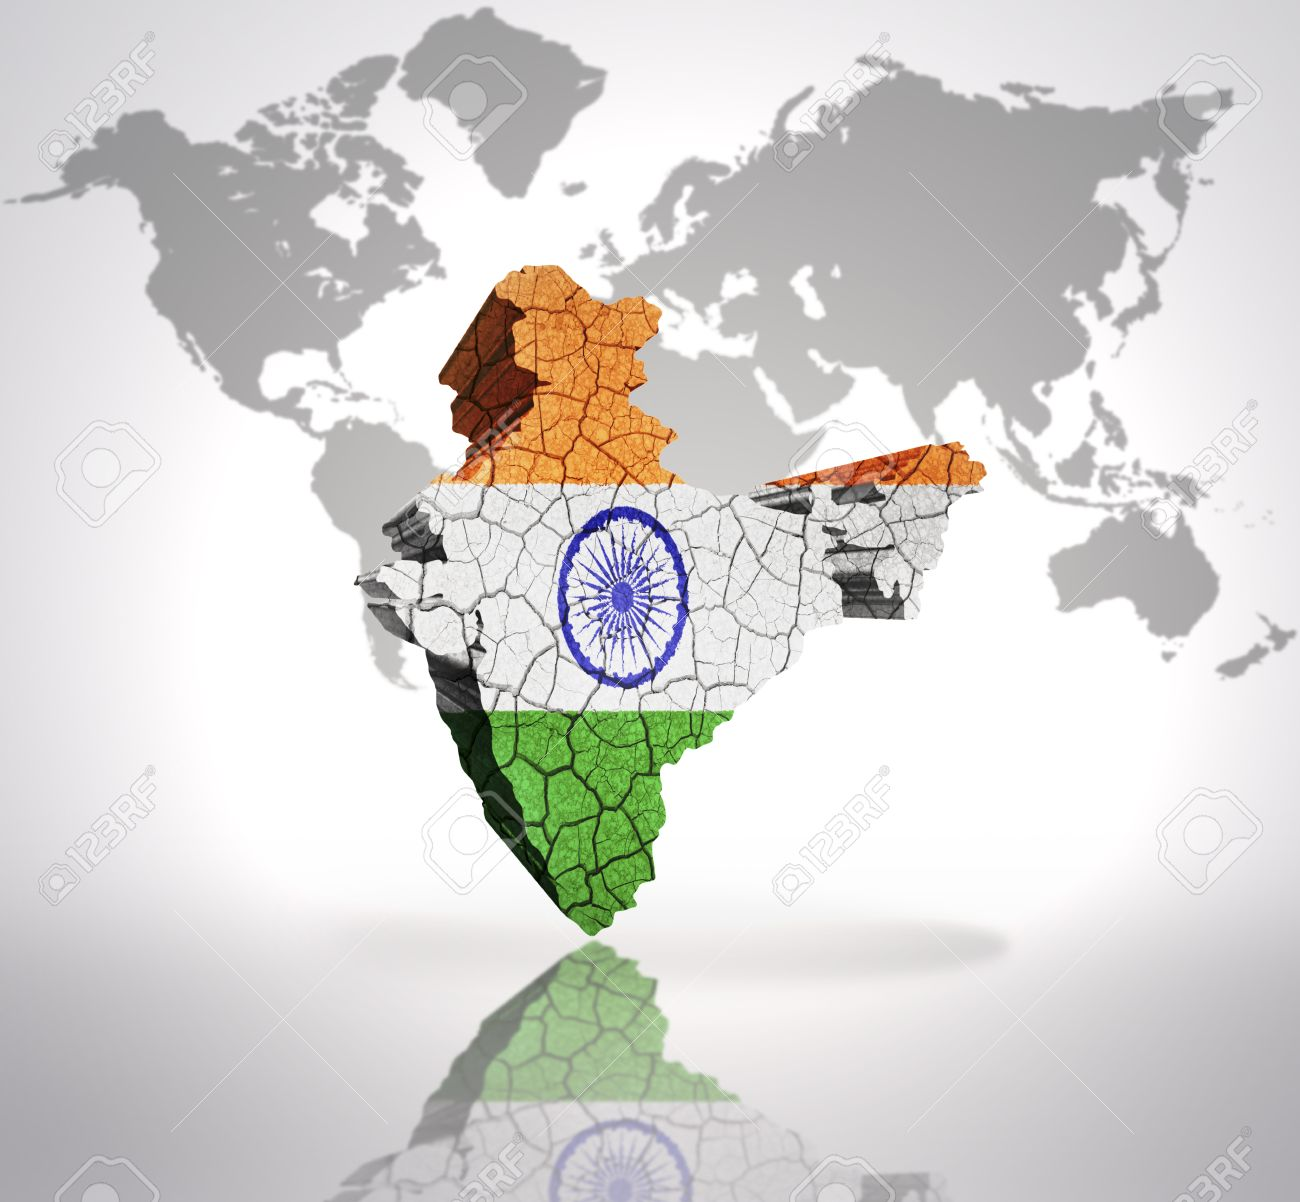 Map of india with indian flag on a world map background stock map of india with indian flag on a world map background stock photo 32802531 gumiabroncs Choice Image